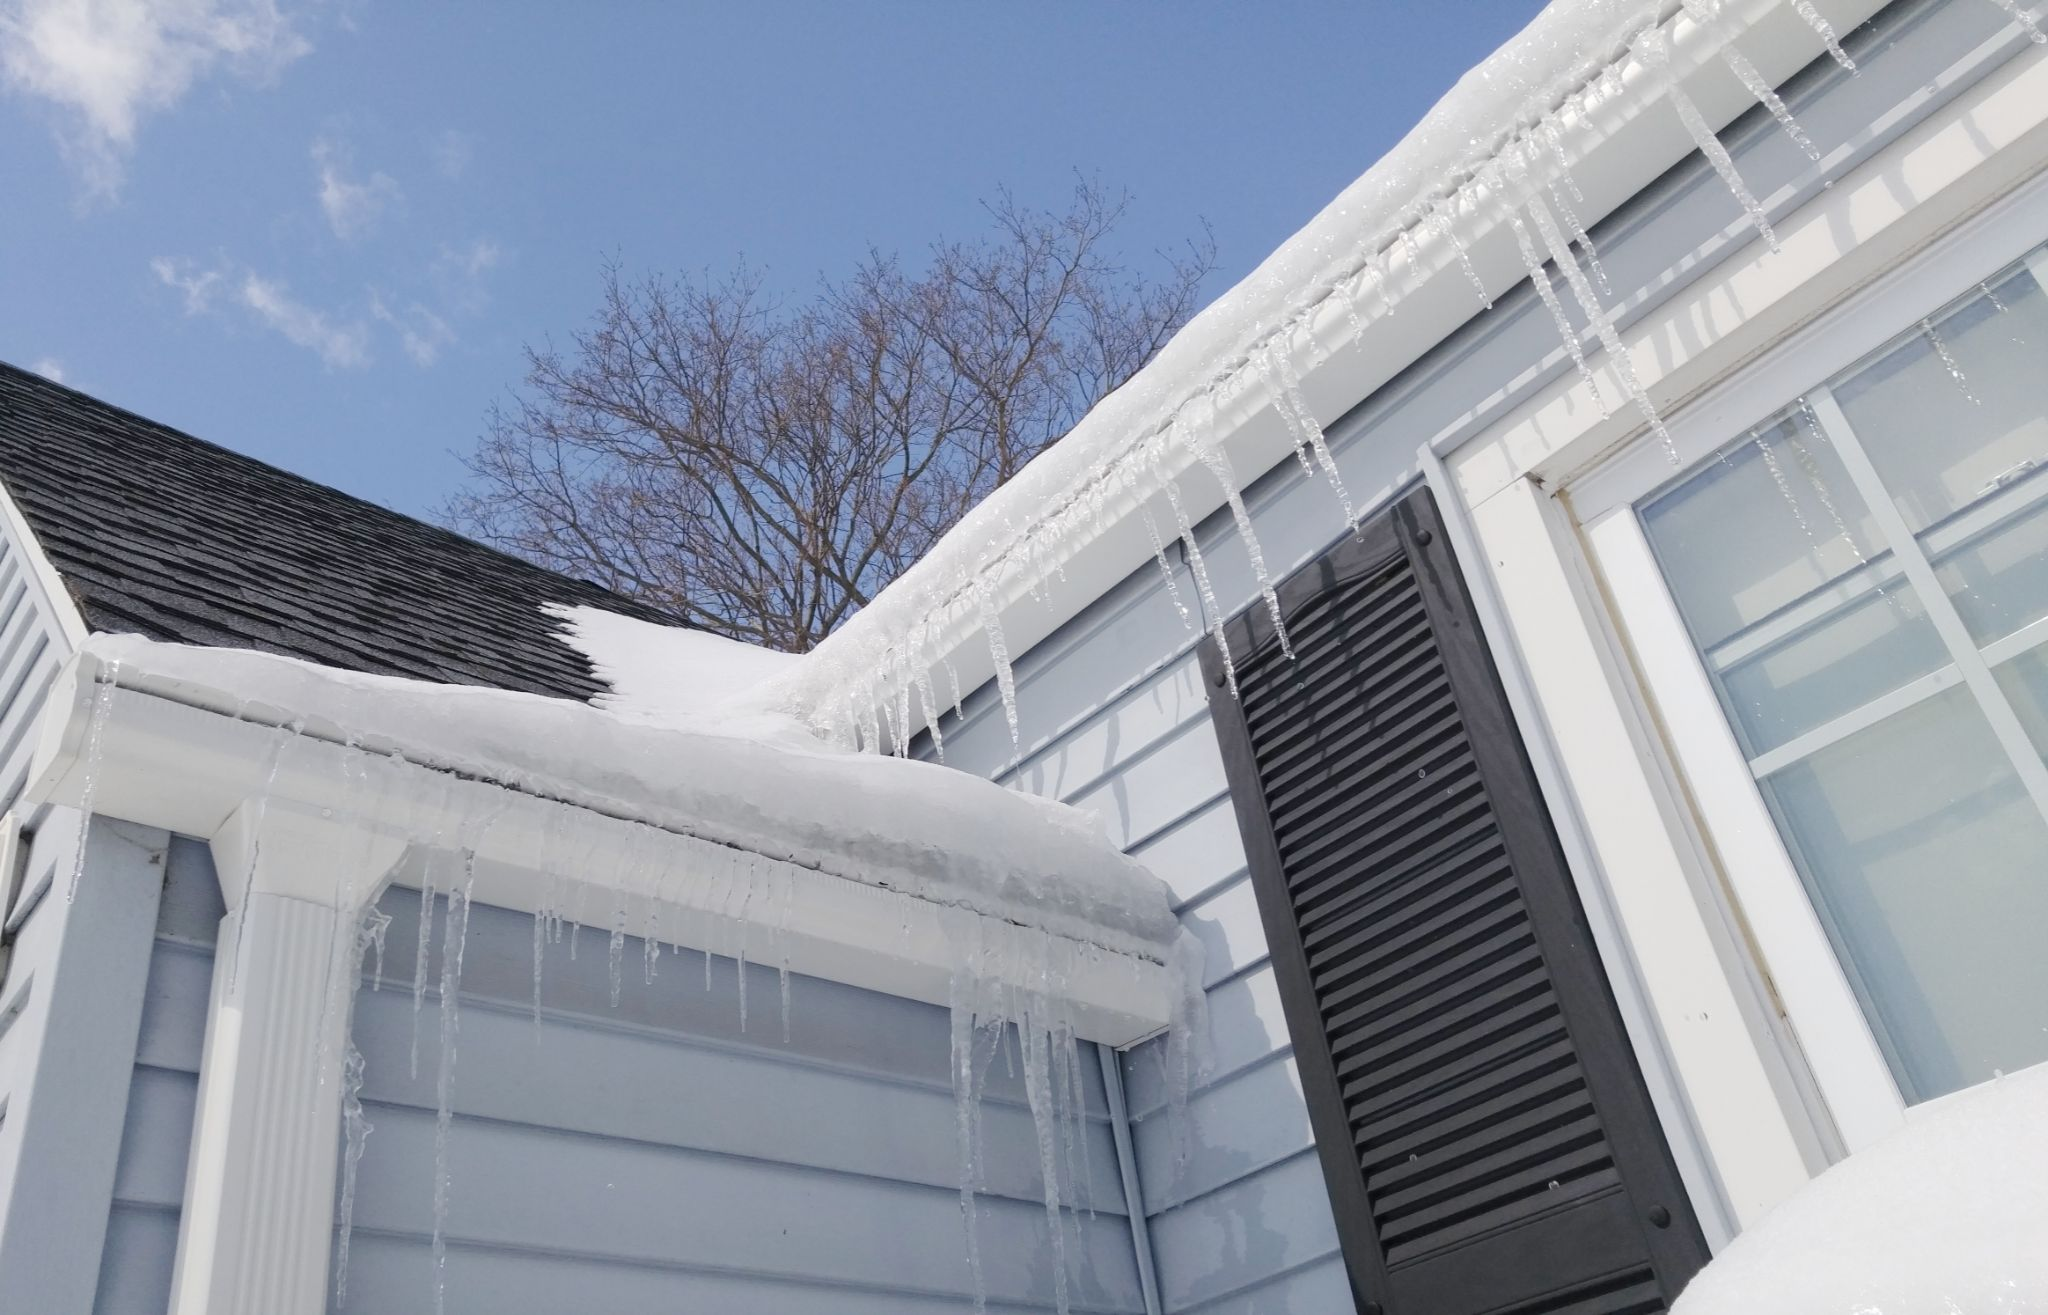 Icicles hanging from a roof and gutters.